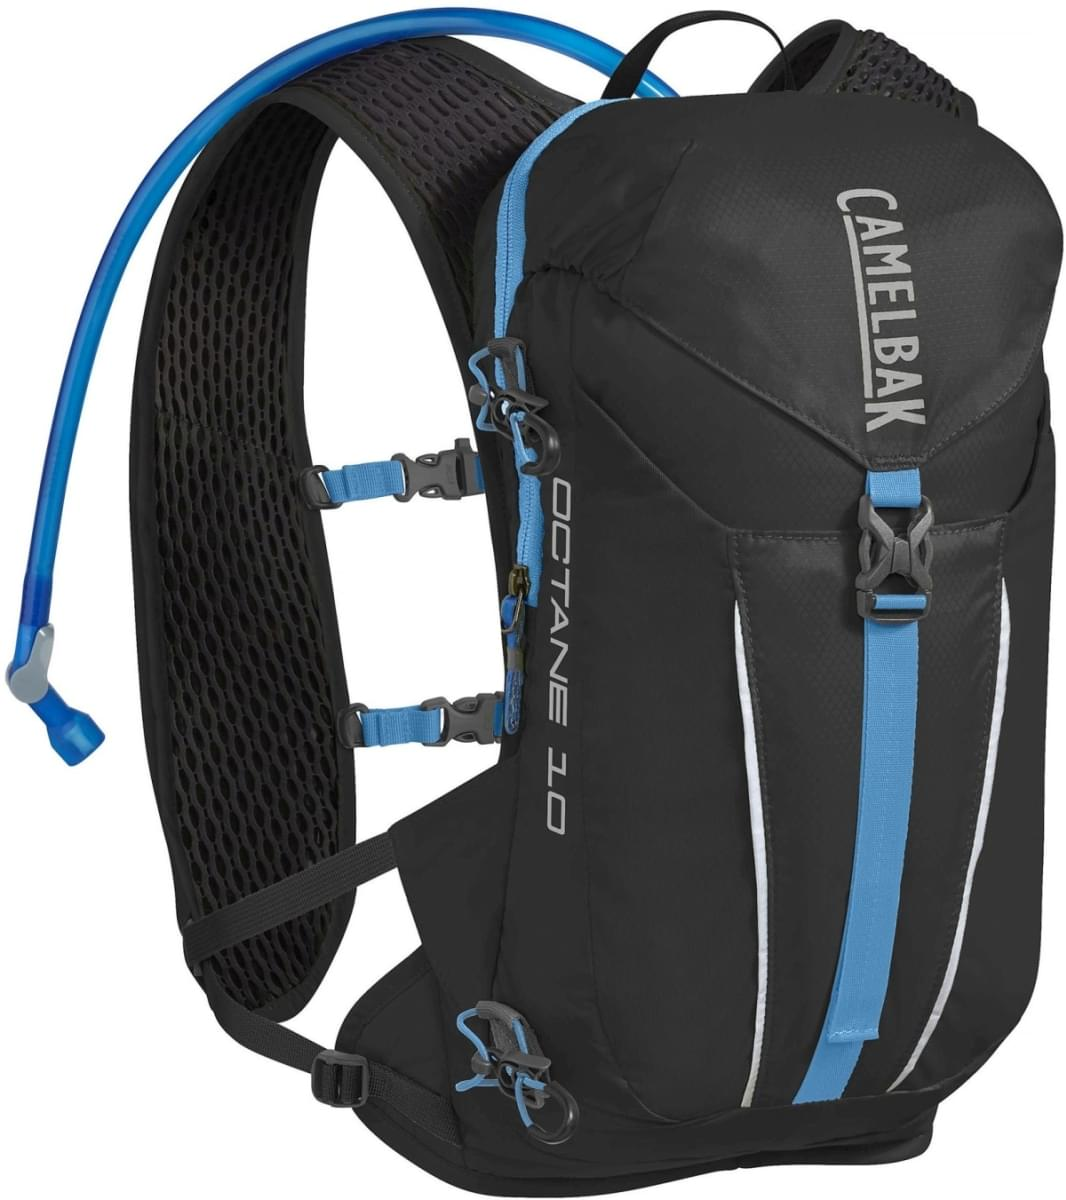 Camelbak Octane 10 - Black/Atomic Blue uni